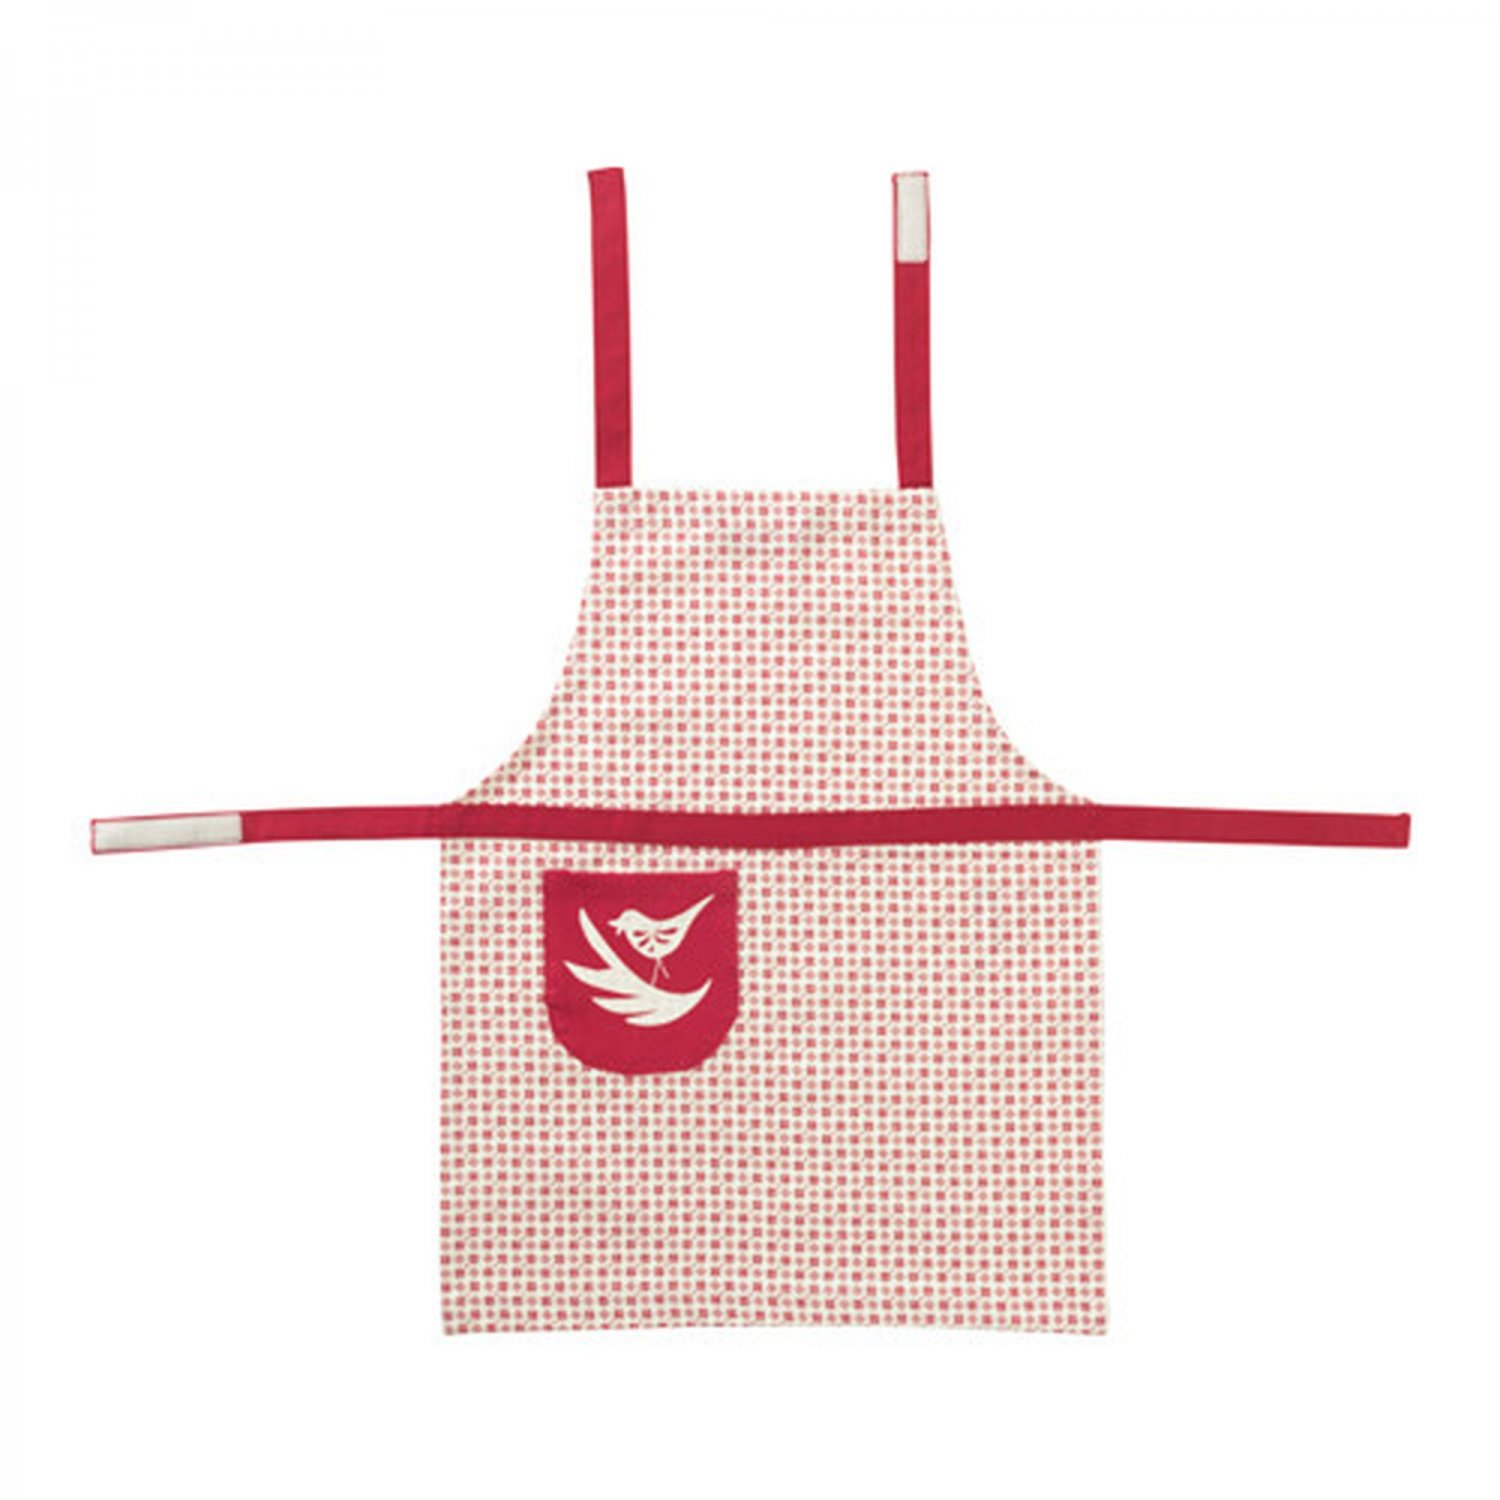 IKEA Vinter 2016 Child's Chef's Bib Apron RED White Toddler Unisex Xmas BIRD Snowflakes